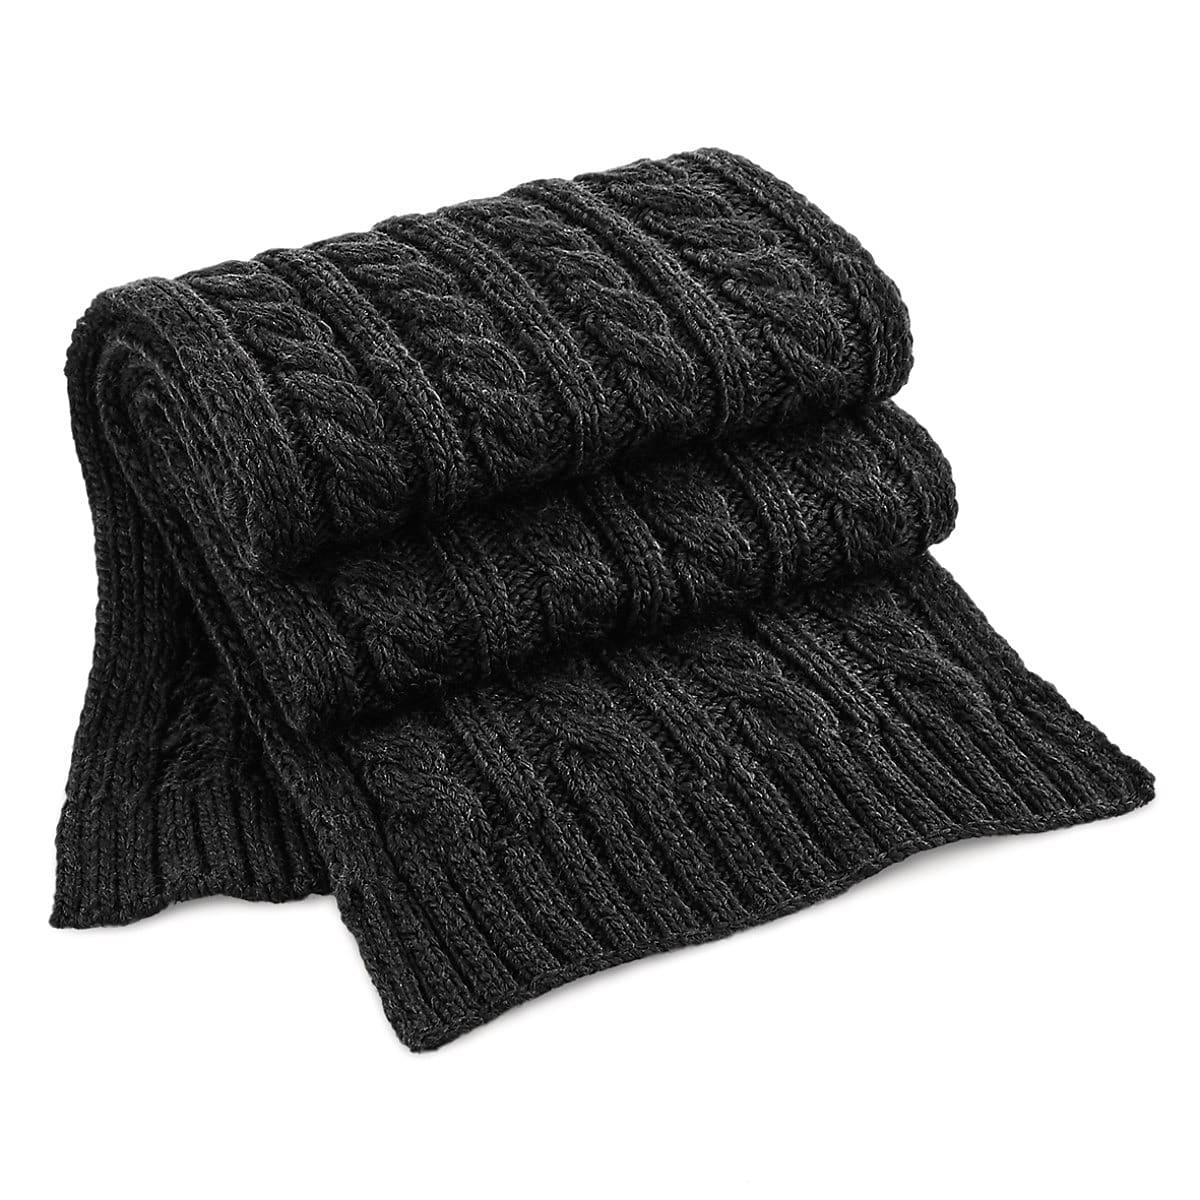 Beechfield Cable Knit Melange Scarf in Black (Product Code: B499)